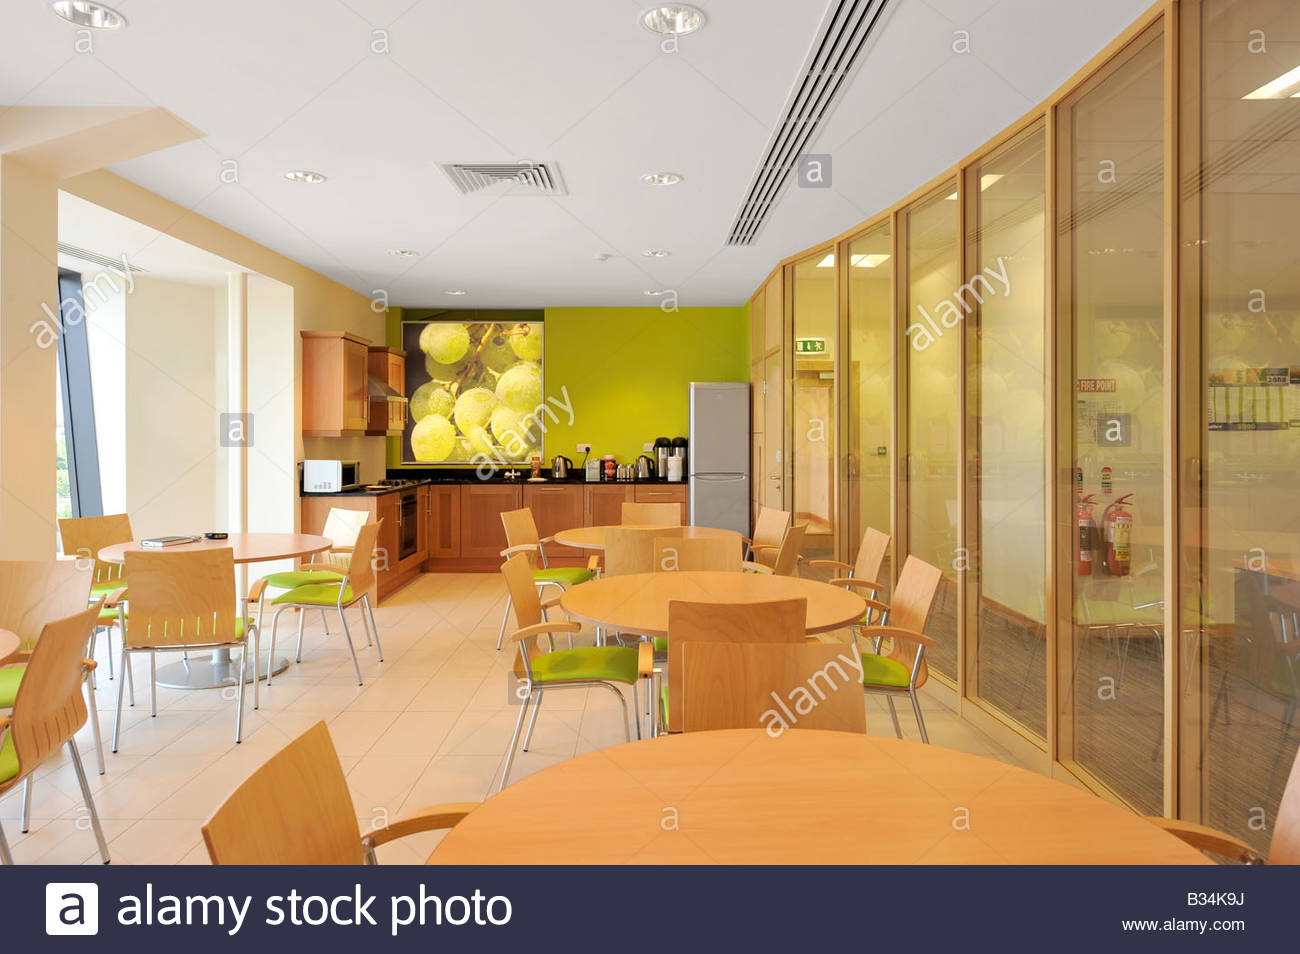 Modern Office Kitchen and Canteen Stock Photo Royalty